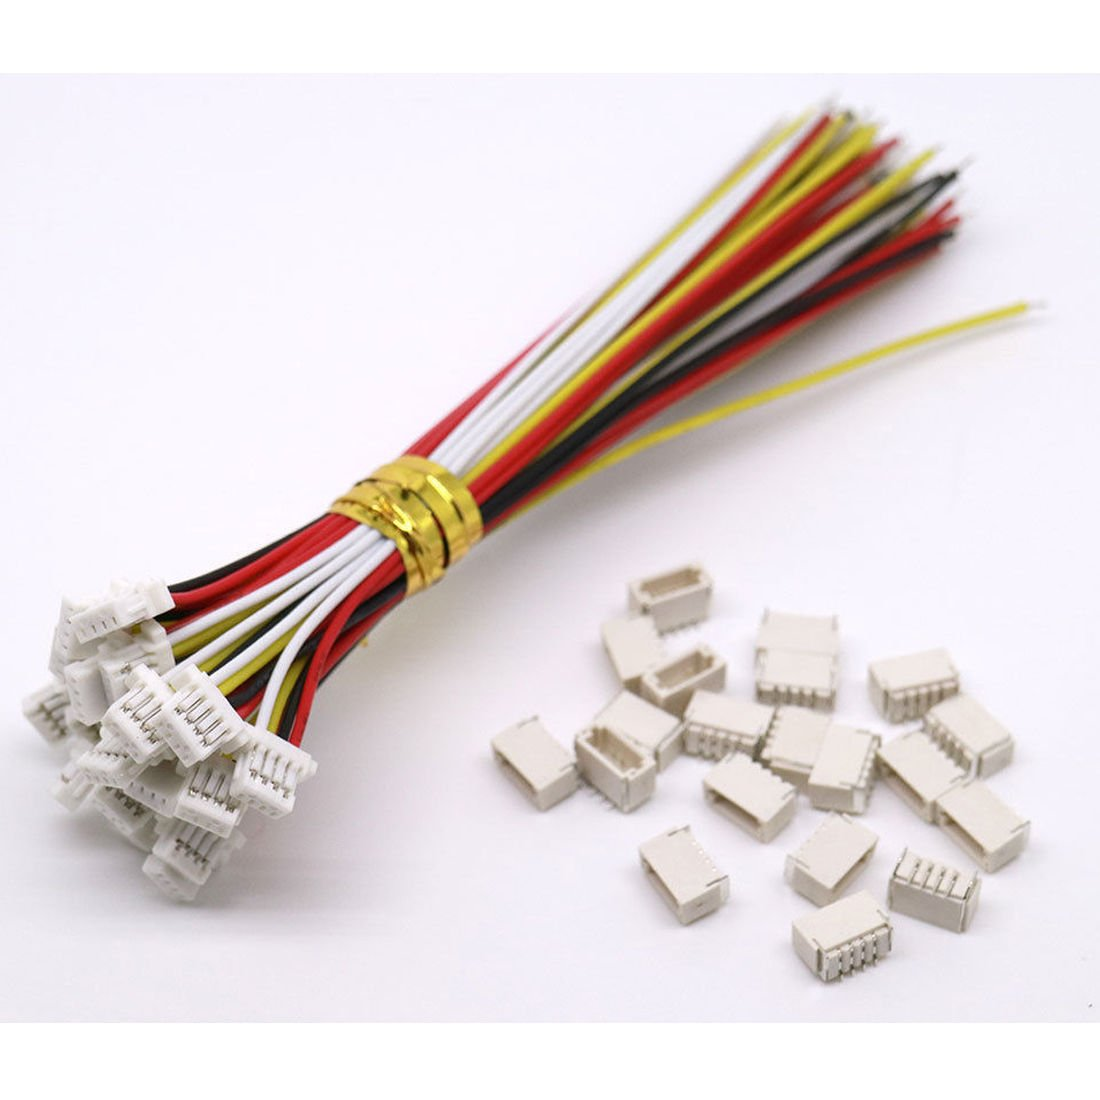 Amazon.com: 20 Sets Mini Micro Sh 1.0 Jst 4-Pin Connector Plug Male With  100mm Cable & Female: Toys & Games